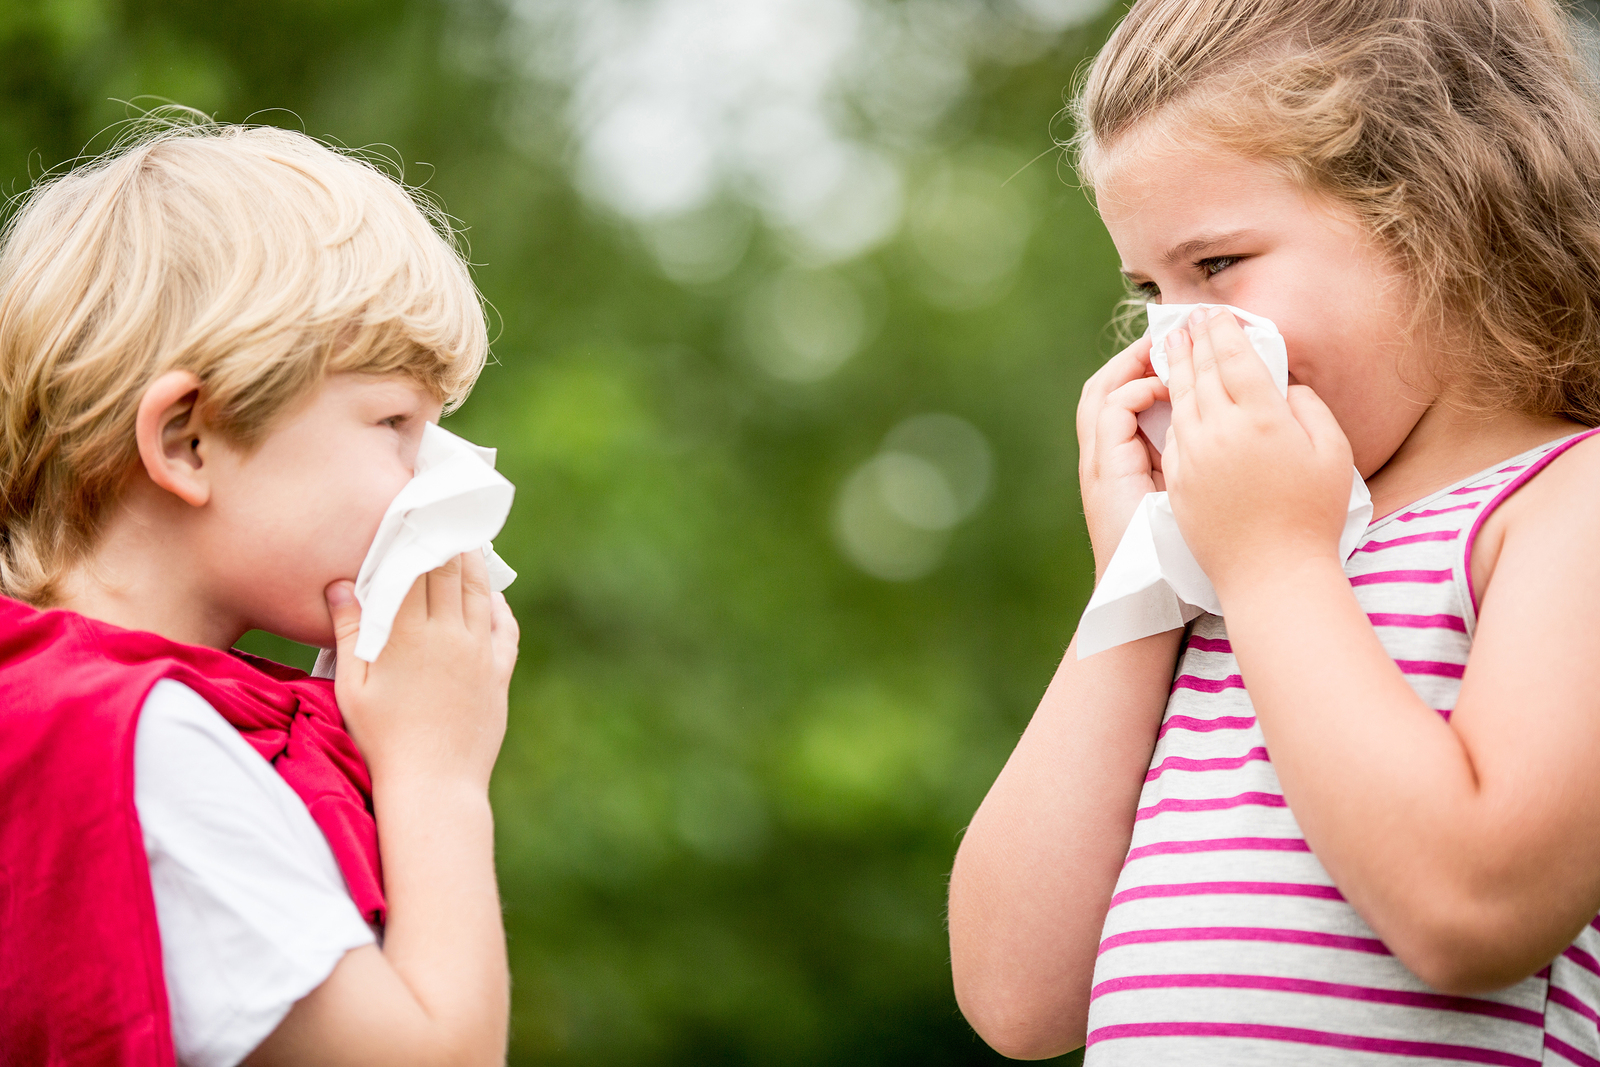 A New Report on Increasing Allergies in Kids Leads to Additional Questions